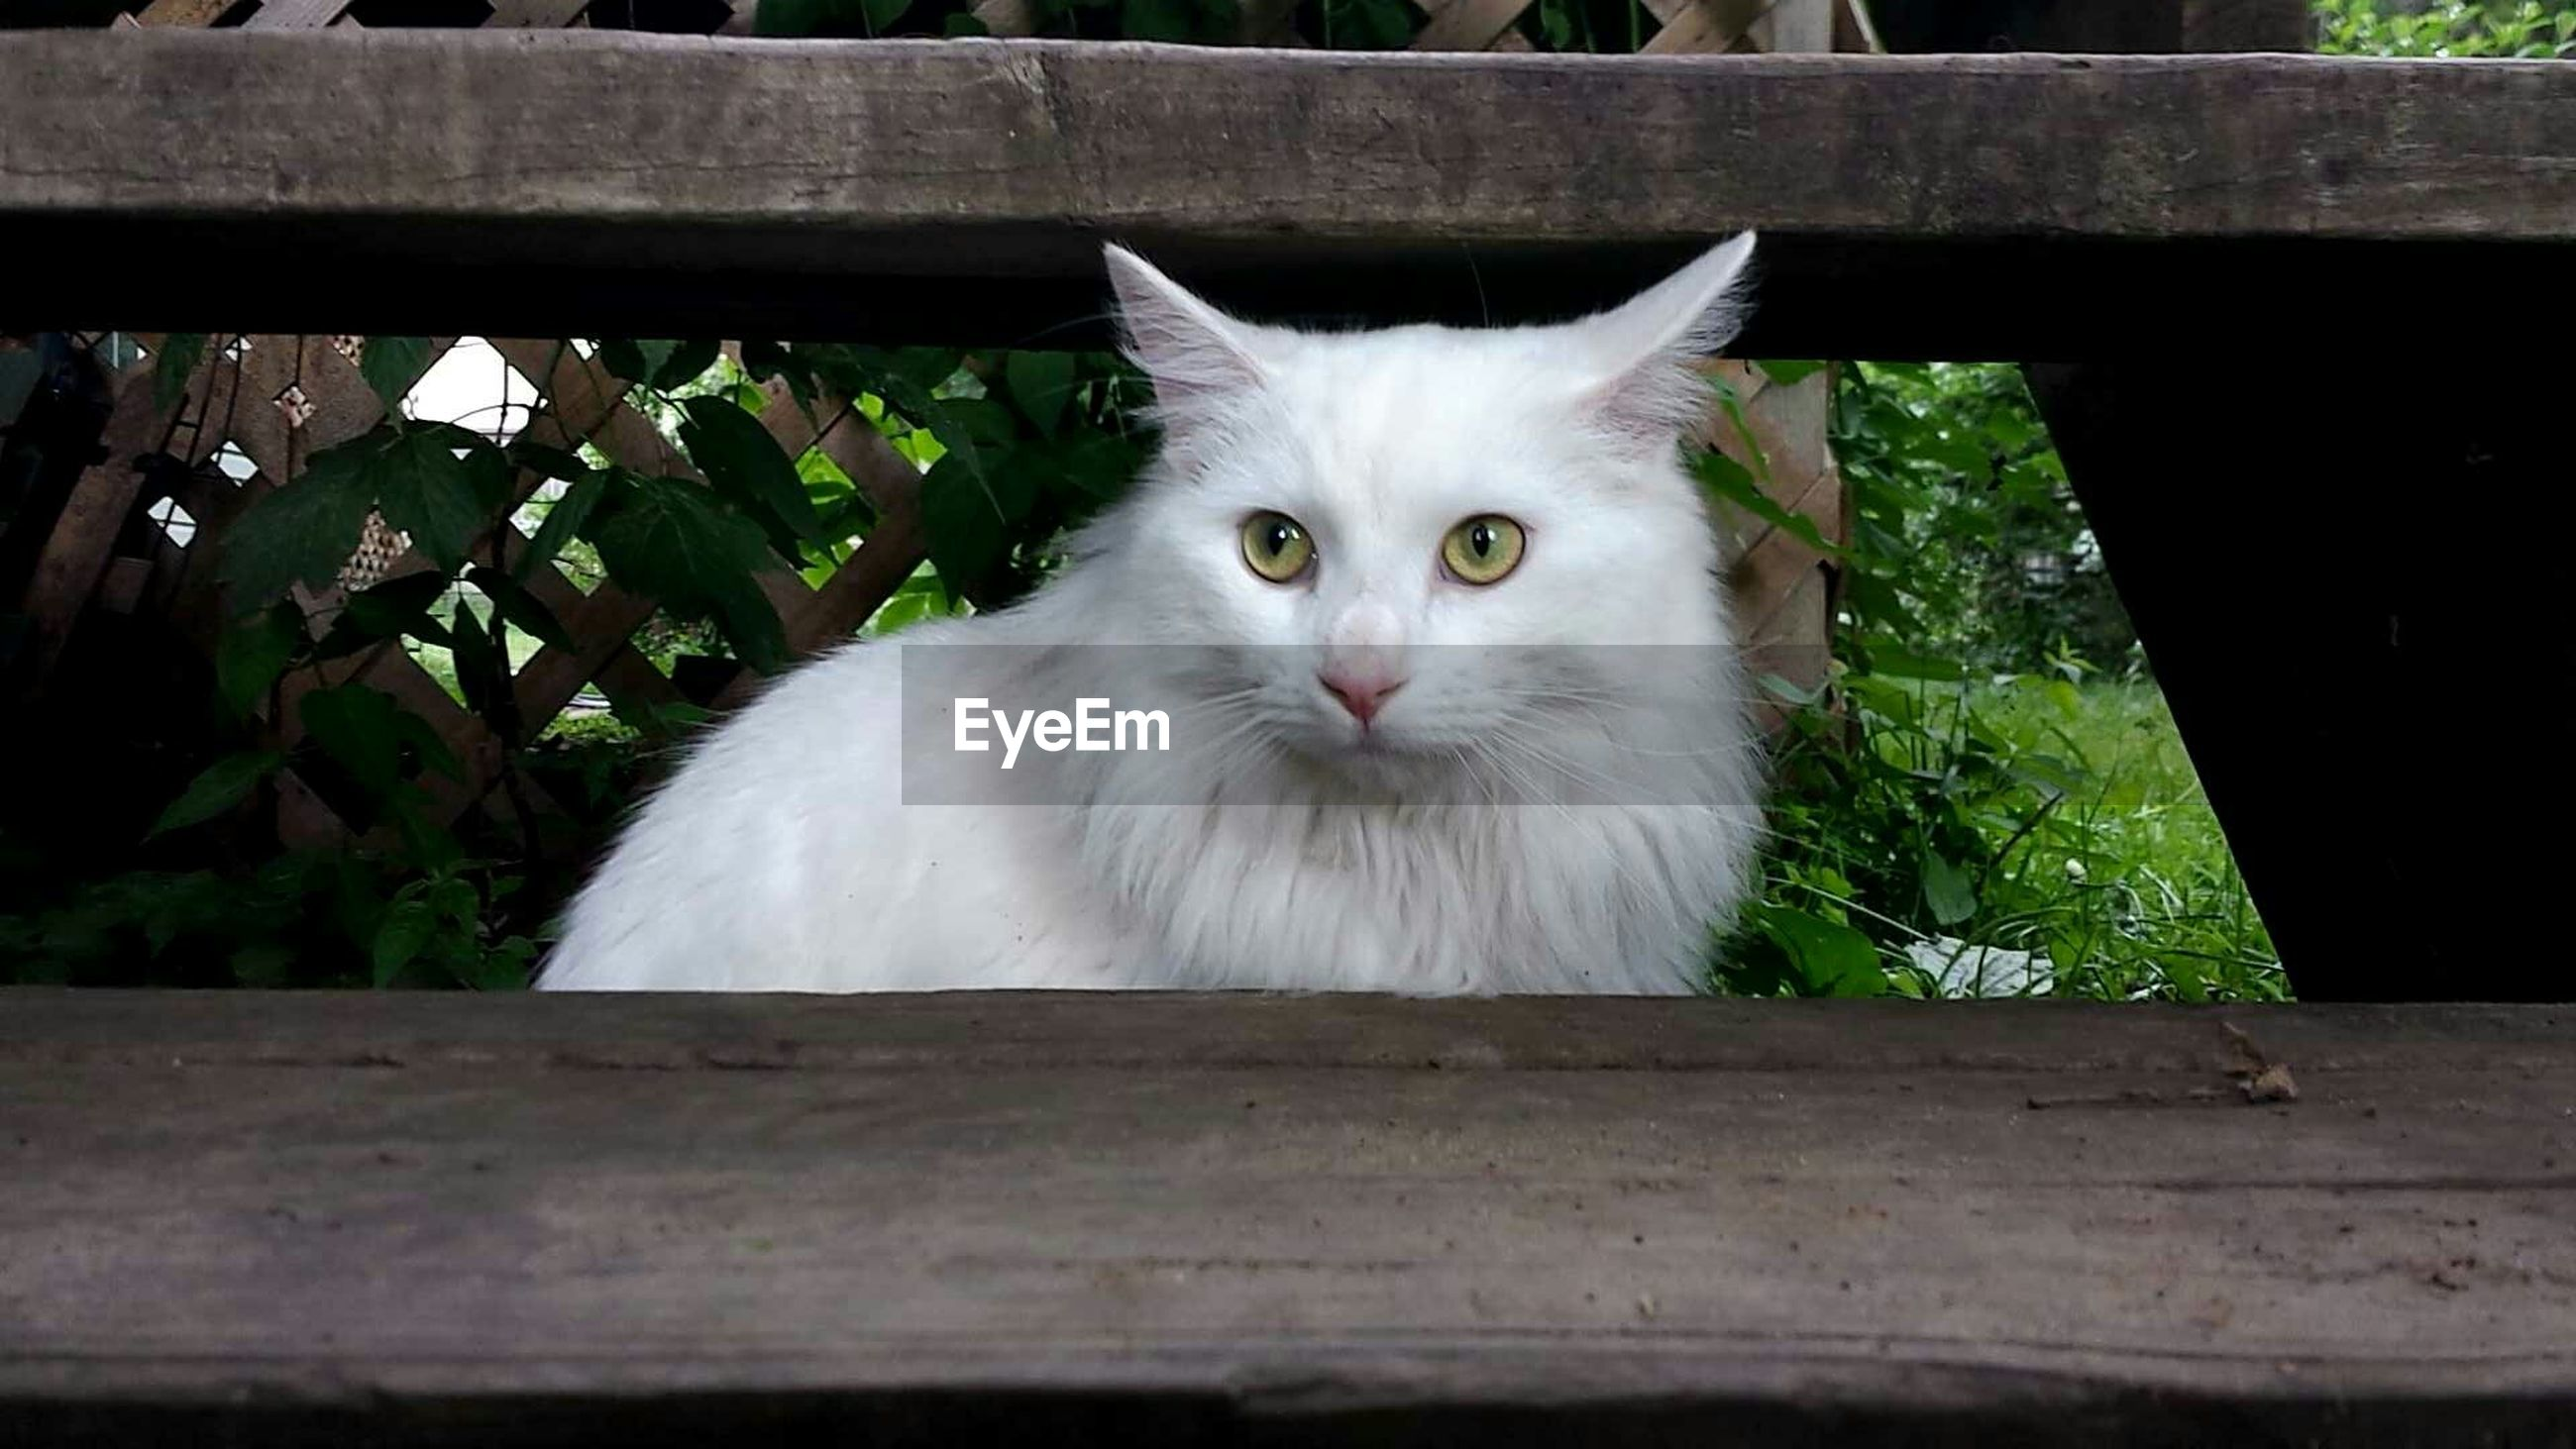 domestic cat, cat, pets, domestic animals, feline, animal themes, one animal, mammal, looking at camera, portrait, whisker, staring, sitting, alertness, close-up, front view, animal eye, animal head, plant, no people